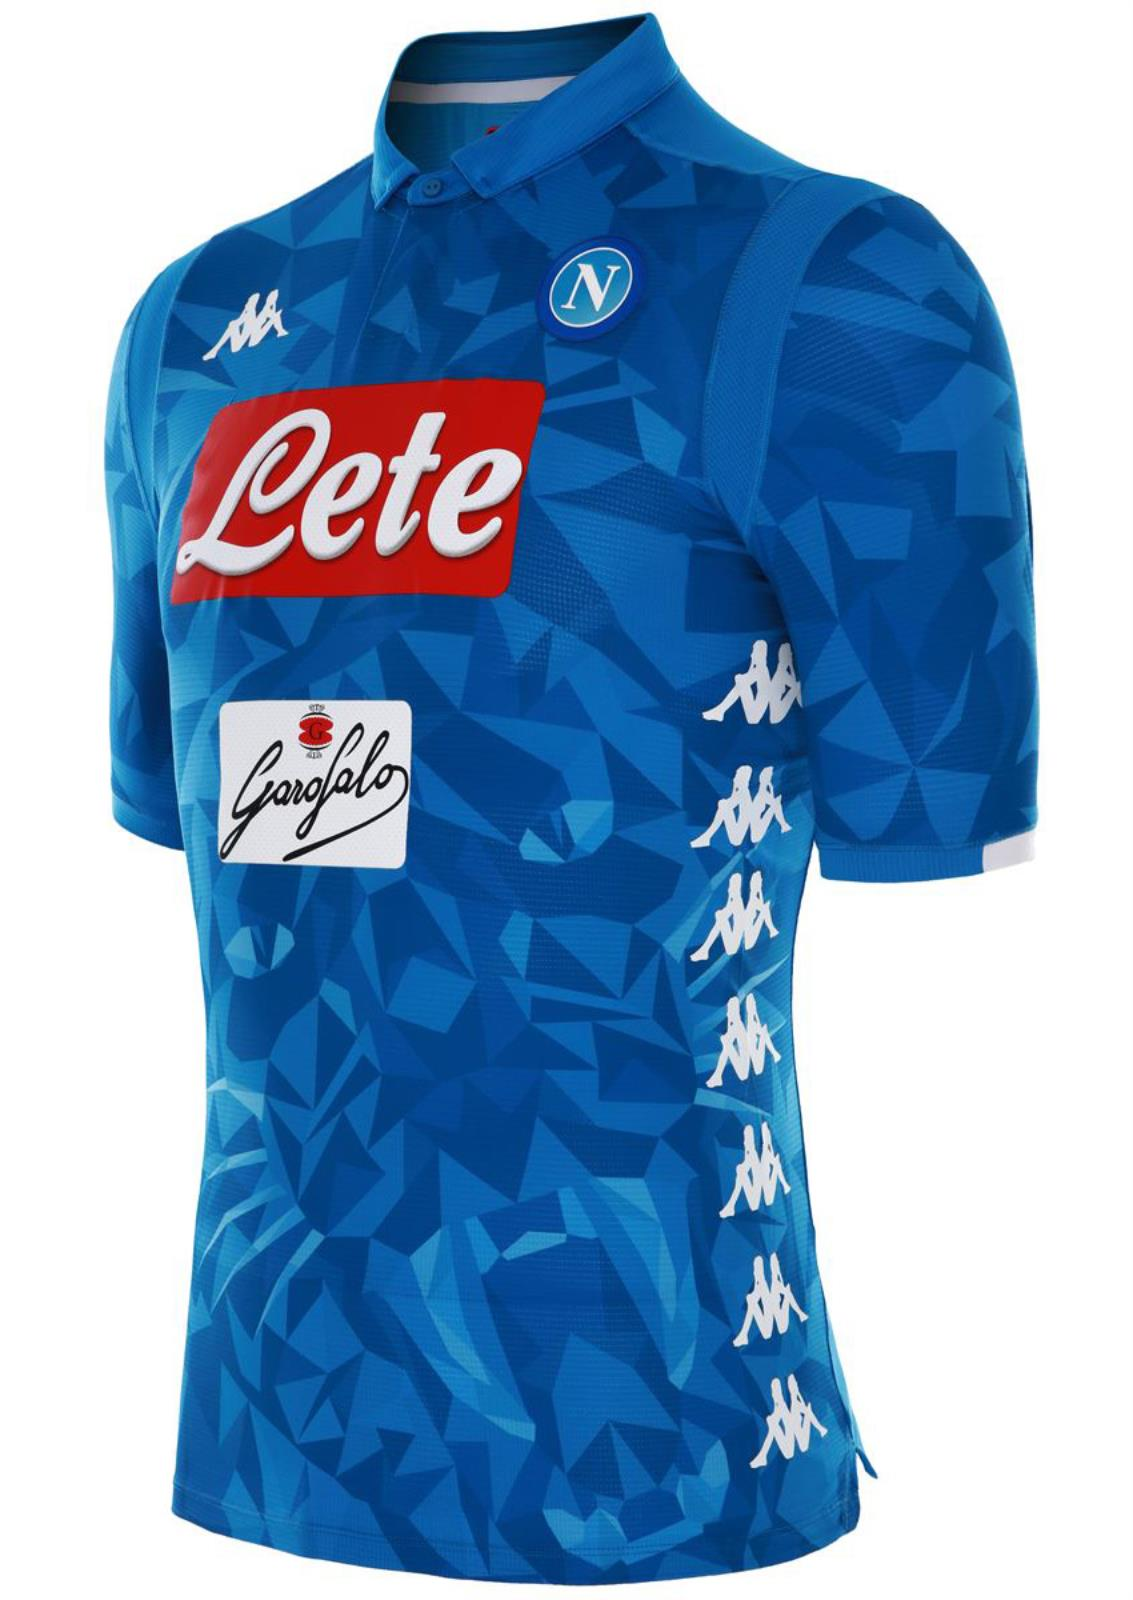 14aee32fd SSC Napoli Naples Kappa Kombat Jersey Shirt Top Match issue Blue ...